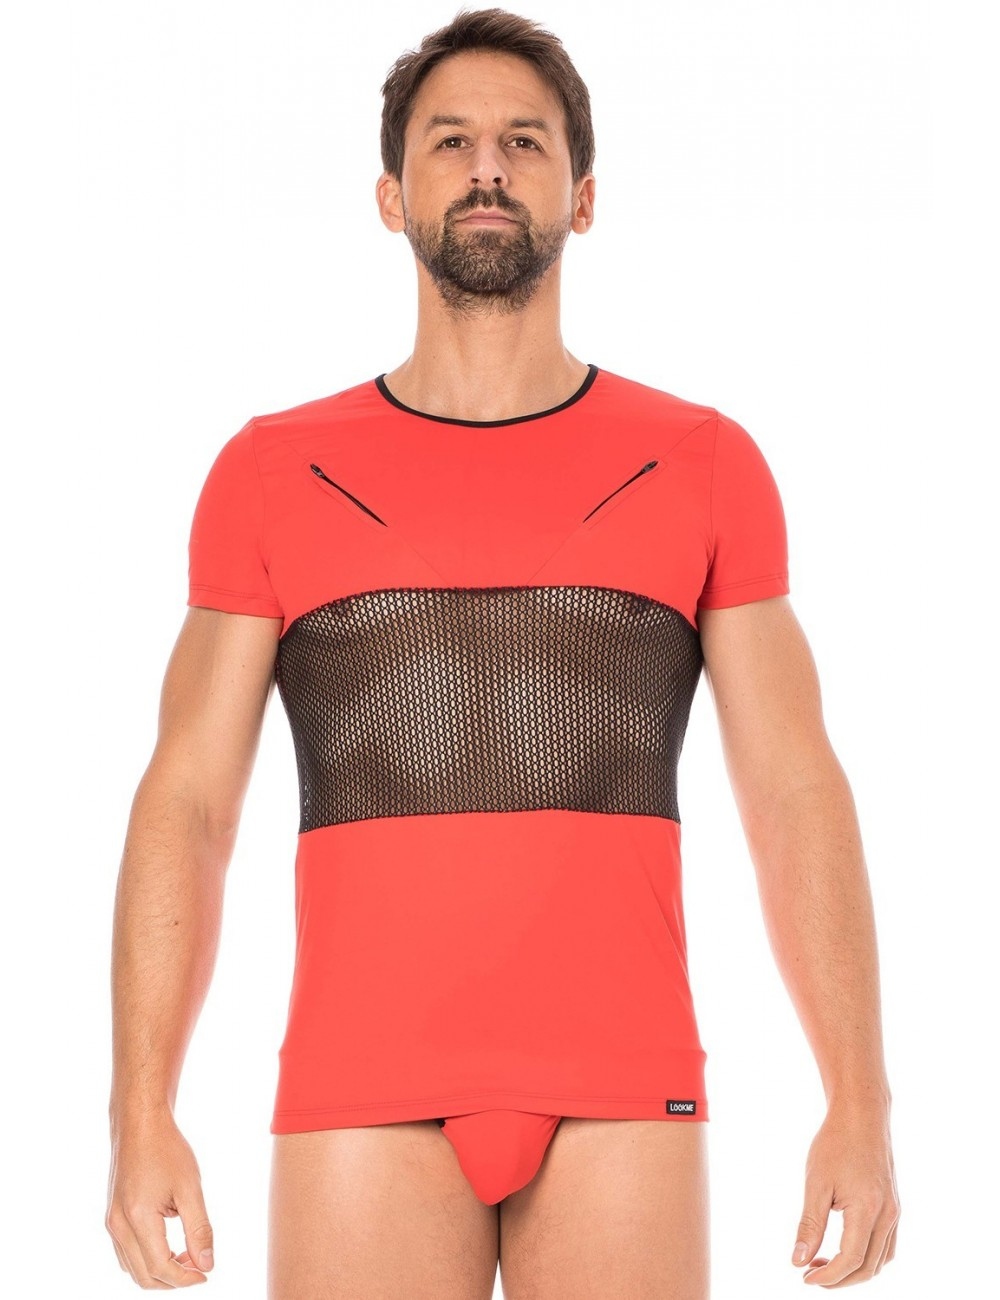 T-shirt rouge filet - LM2004-81RED